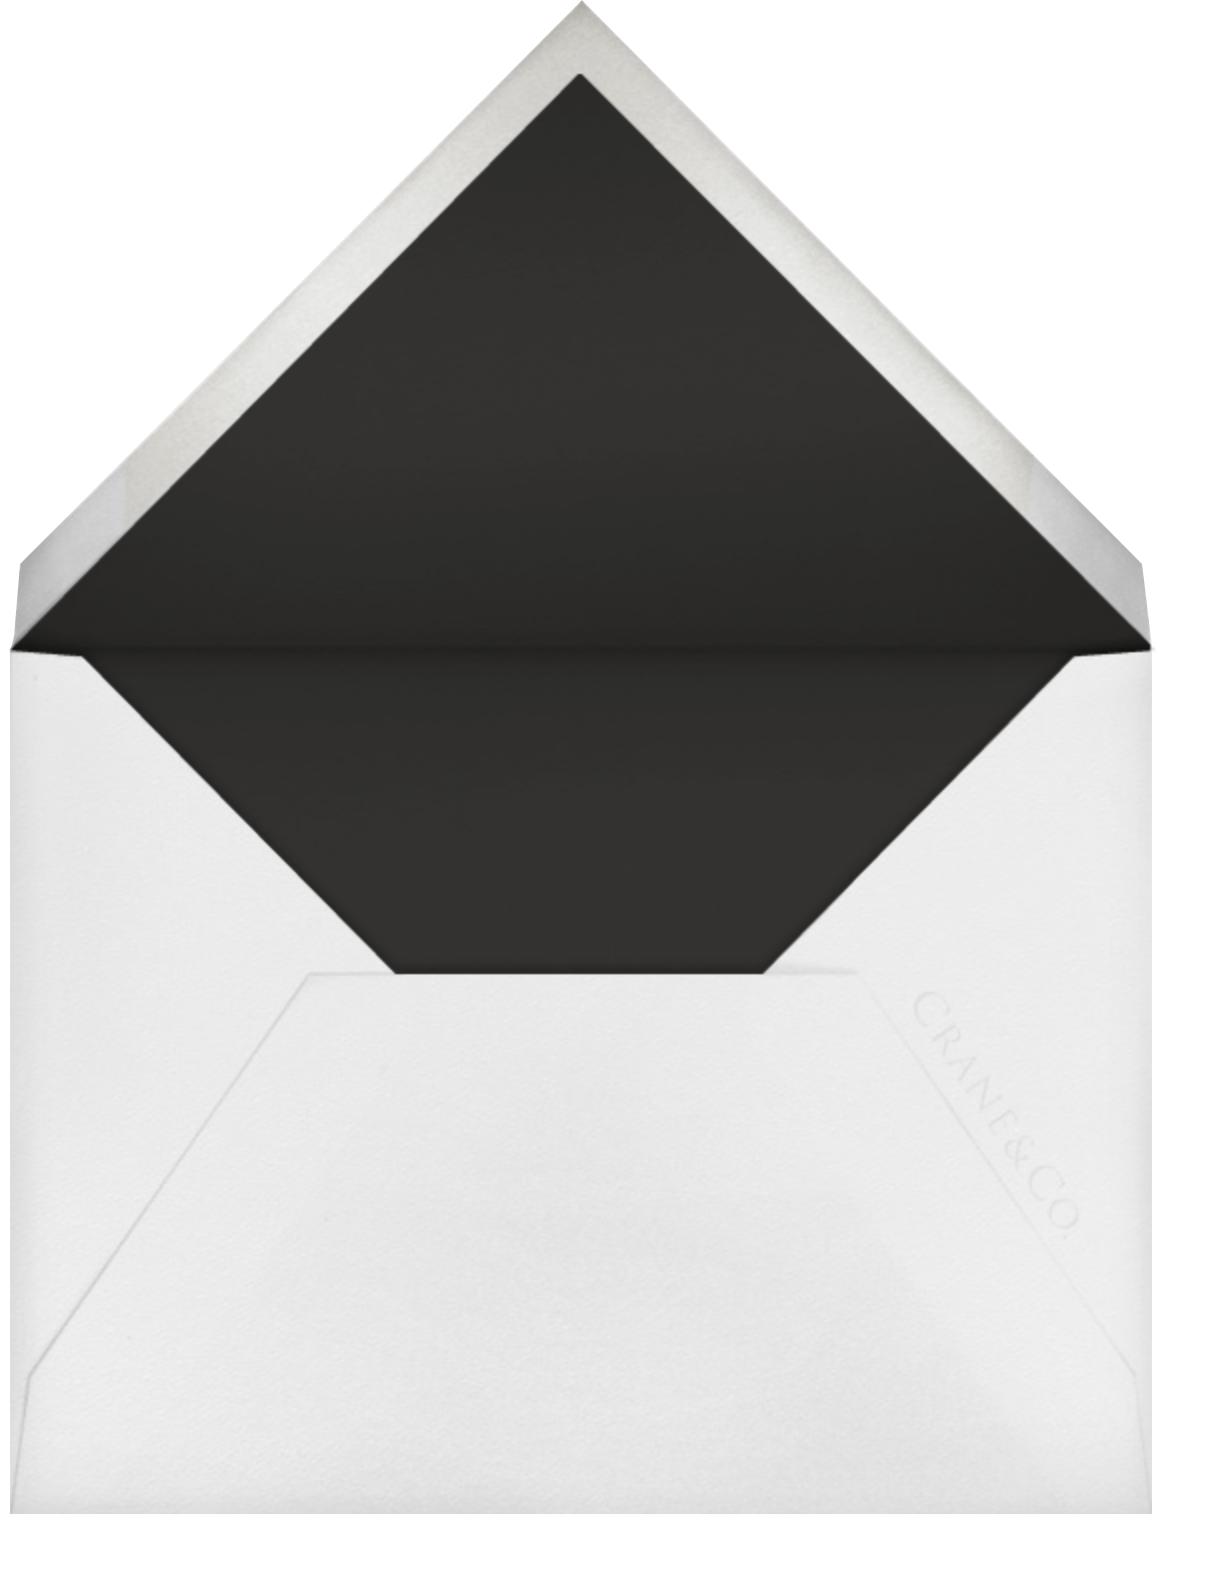 Cascara - Paperless Post - Personalized stationery - envelope back